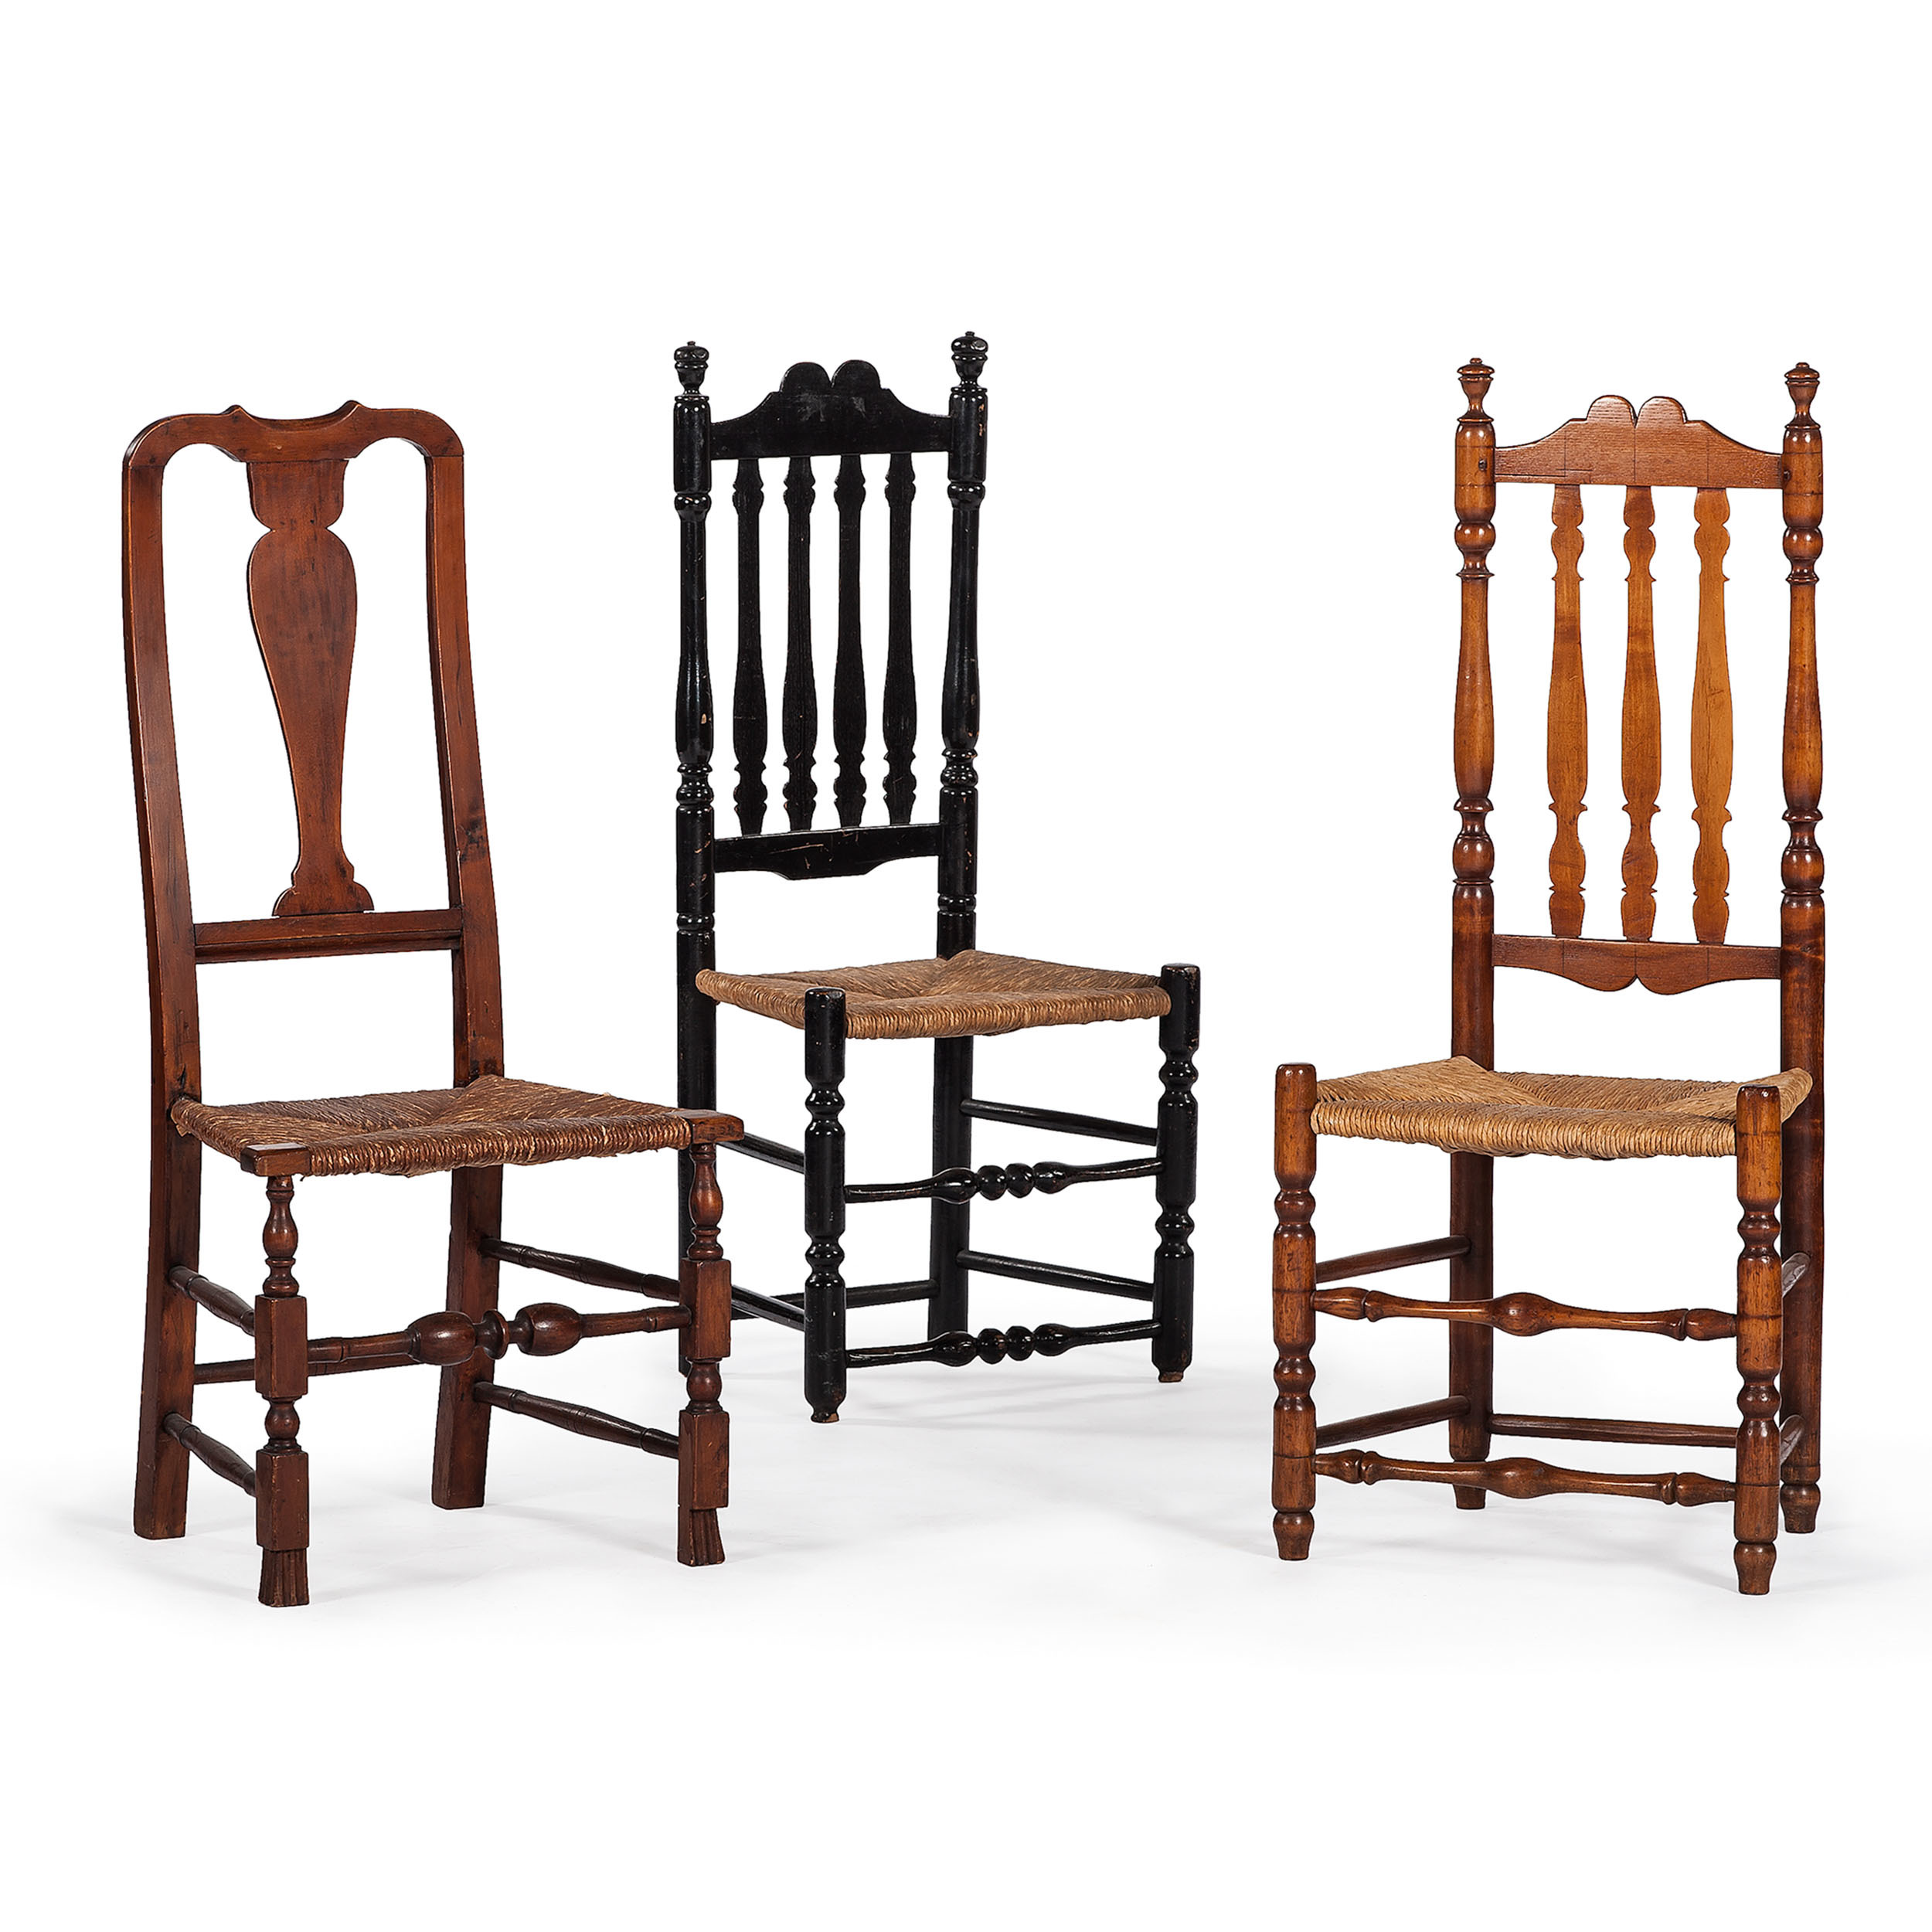 Prime English Queen Anne Chair Plus Cowans Auction House The Gamerscity Chair Design For Home Gamerscityorg